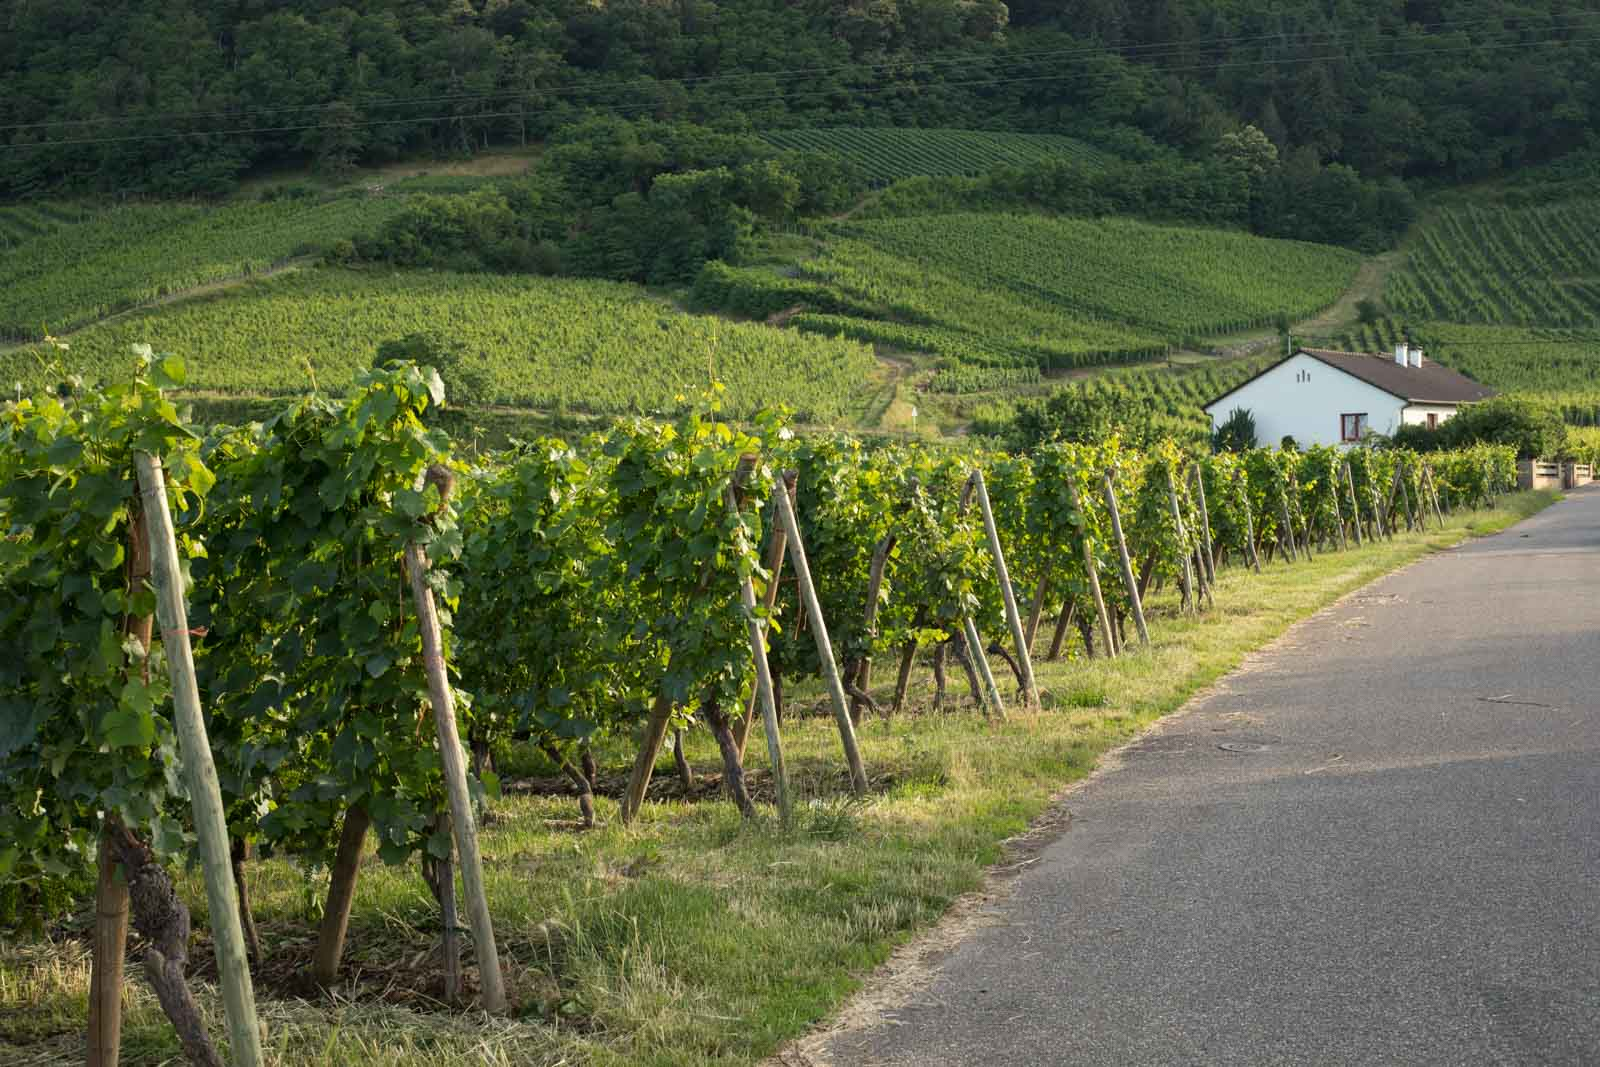 The vineyards near Wintzenheim, one of many idyllic Alsace towns. ©Kevin Day/Opening a Bottle